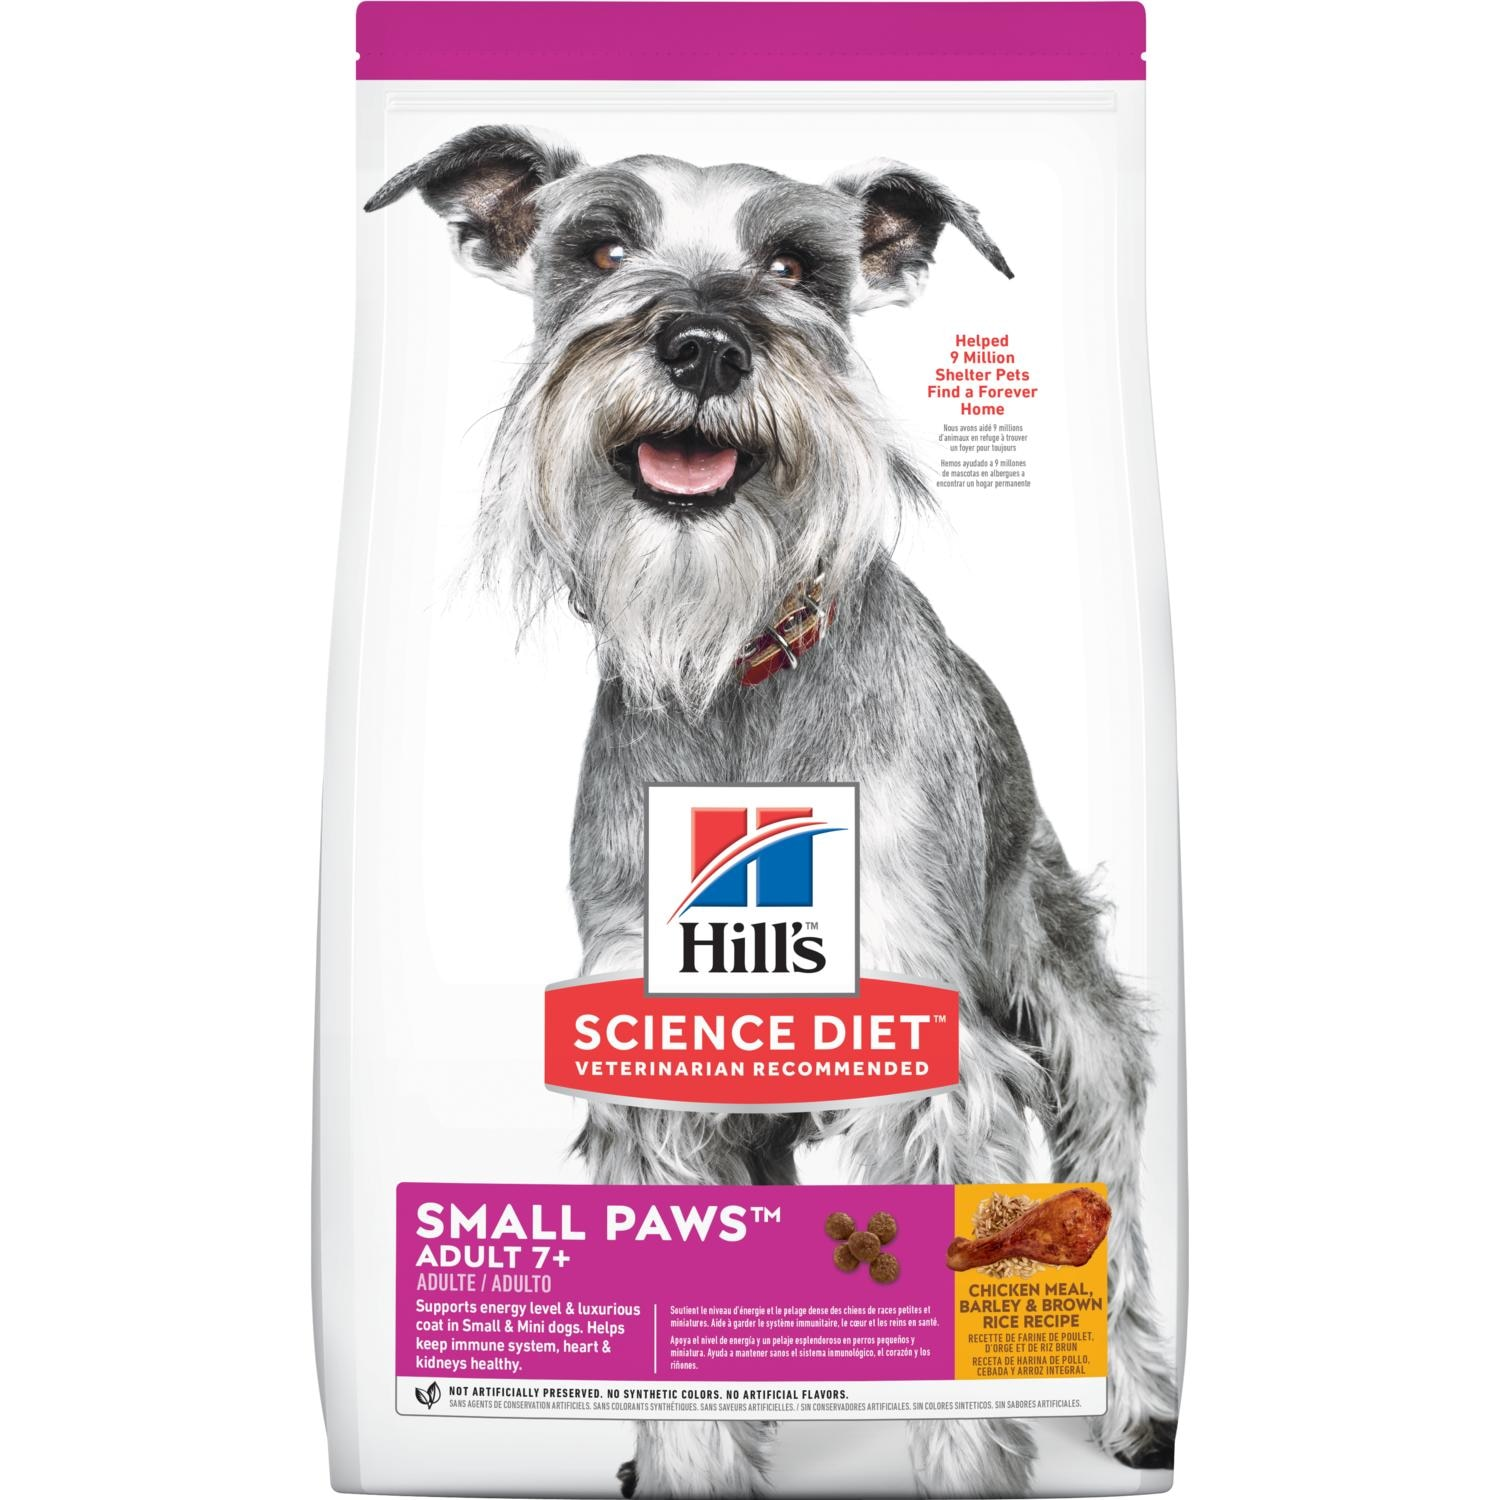 Hill S Science Diet Adult 7 Small Paws Chicken Meal Barley Brown Rice Recipe Dog Food